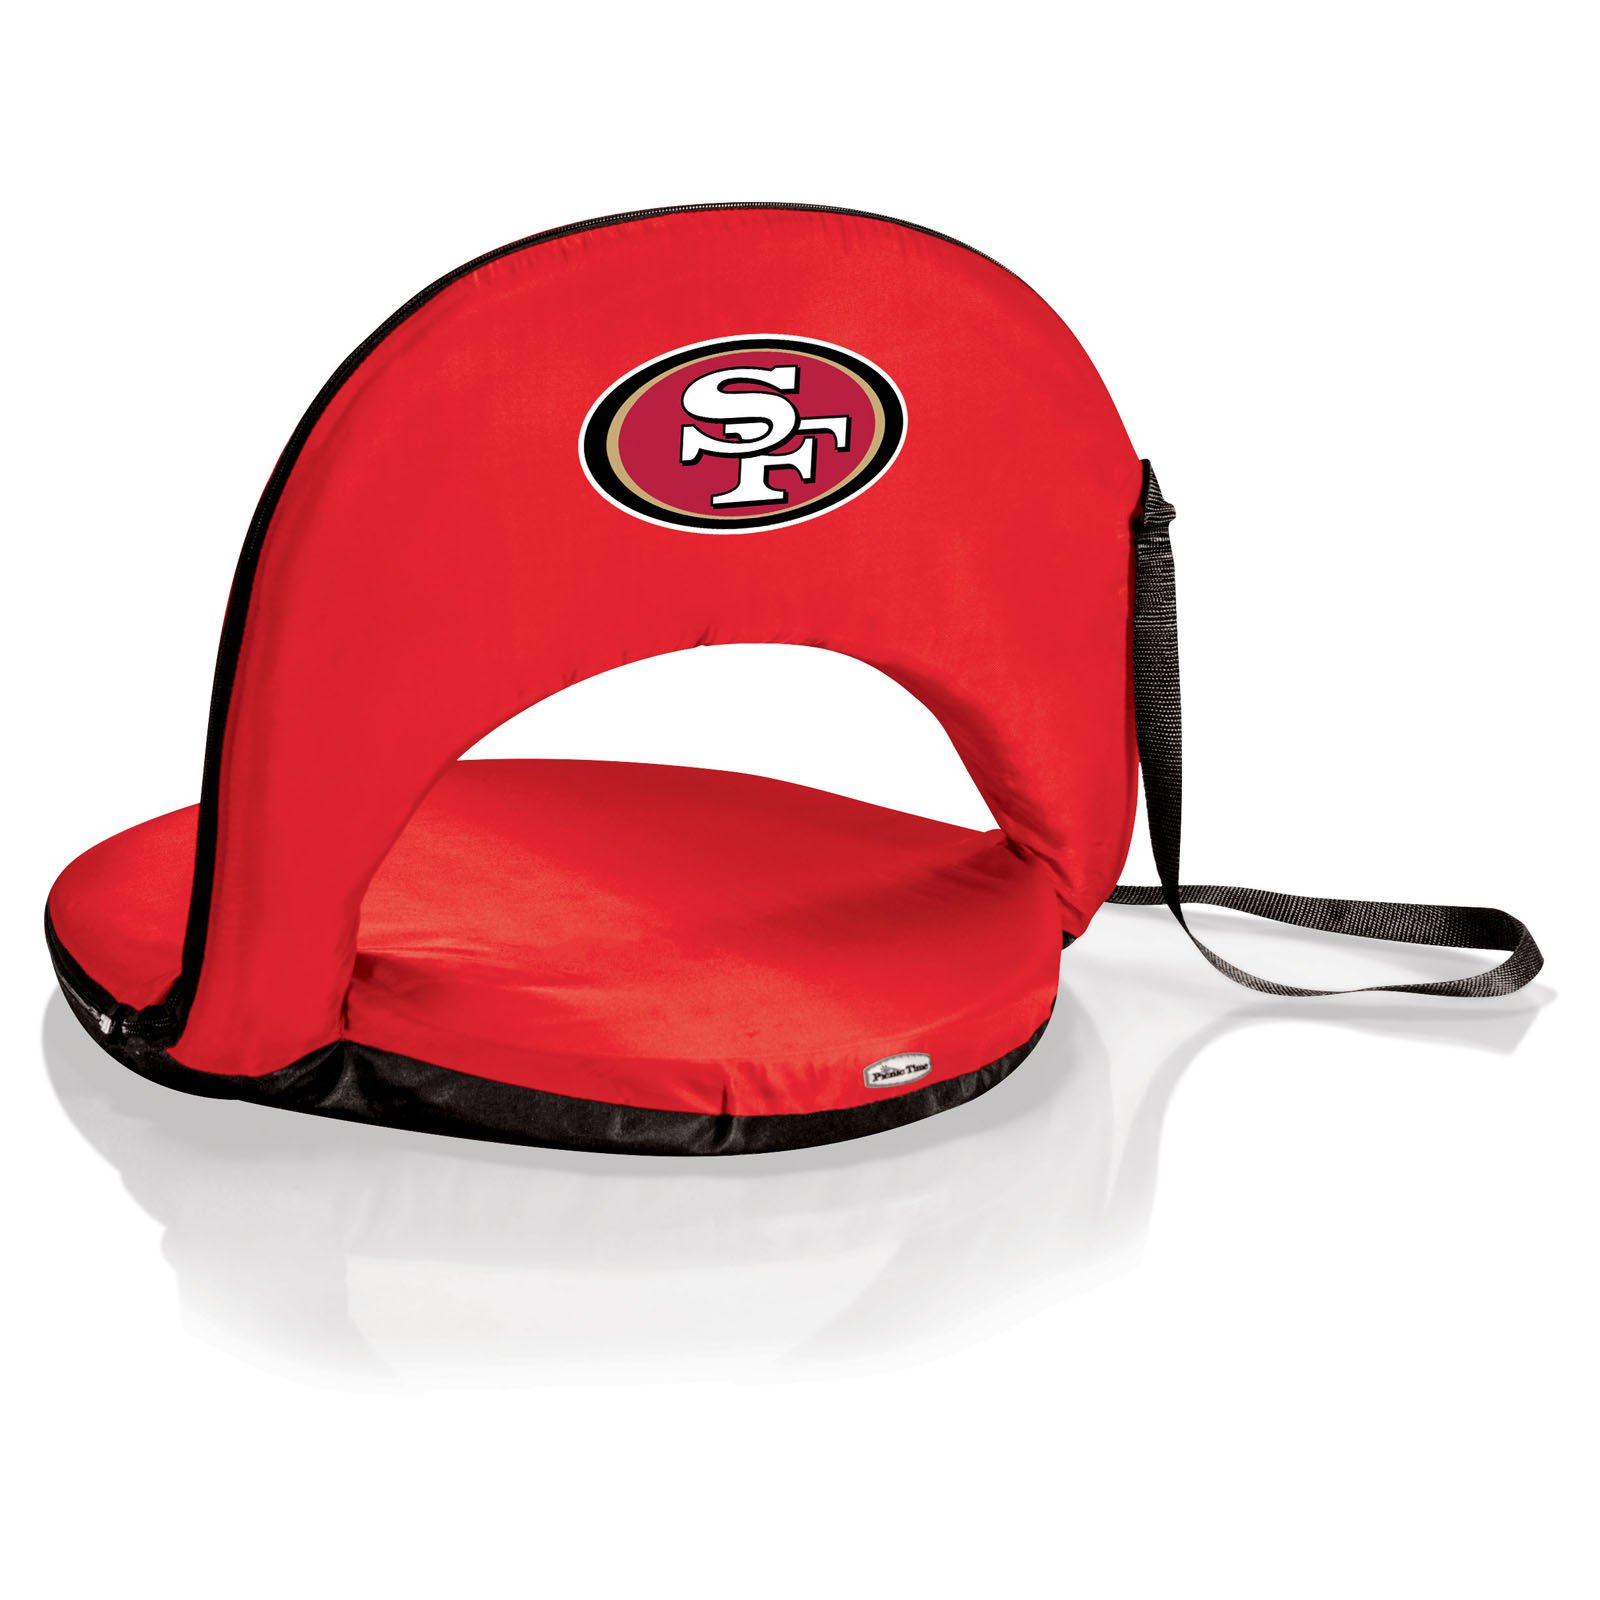 Oniva Reclining Beach Seat With NFL Football Team Logo